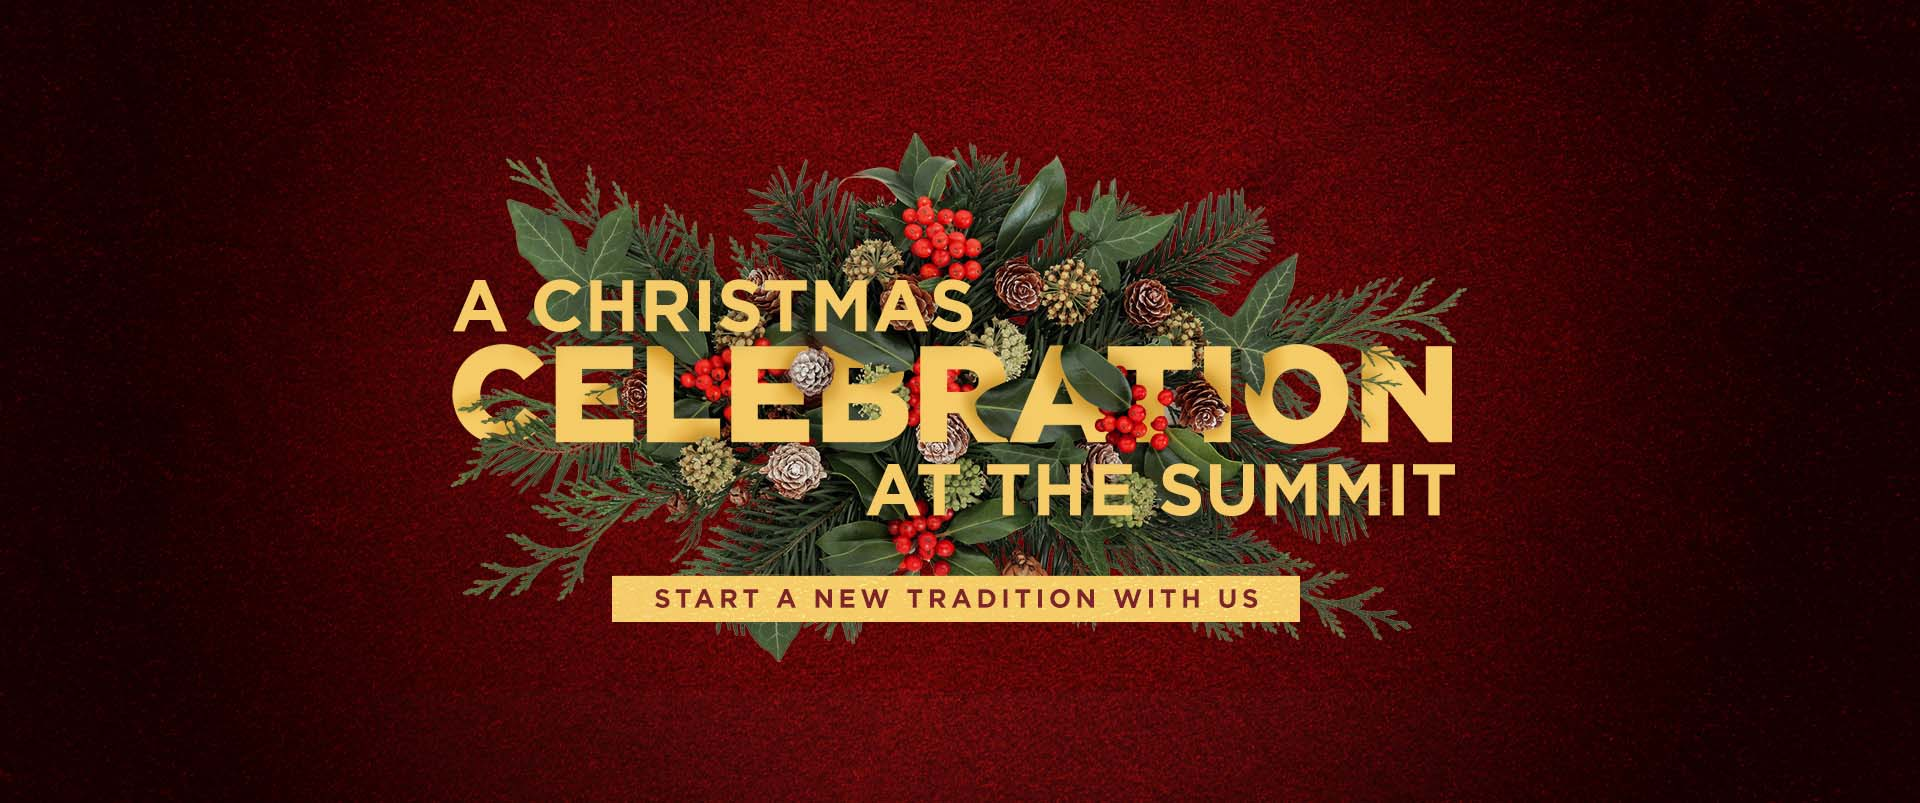 A Christmas Celebration at the Summit